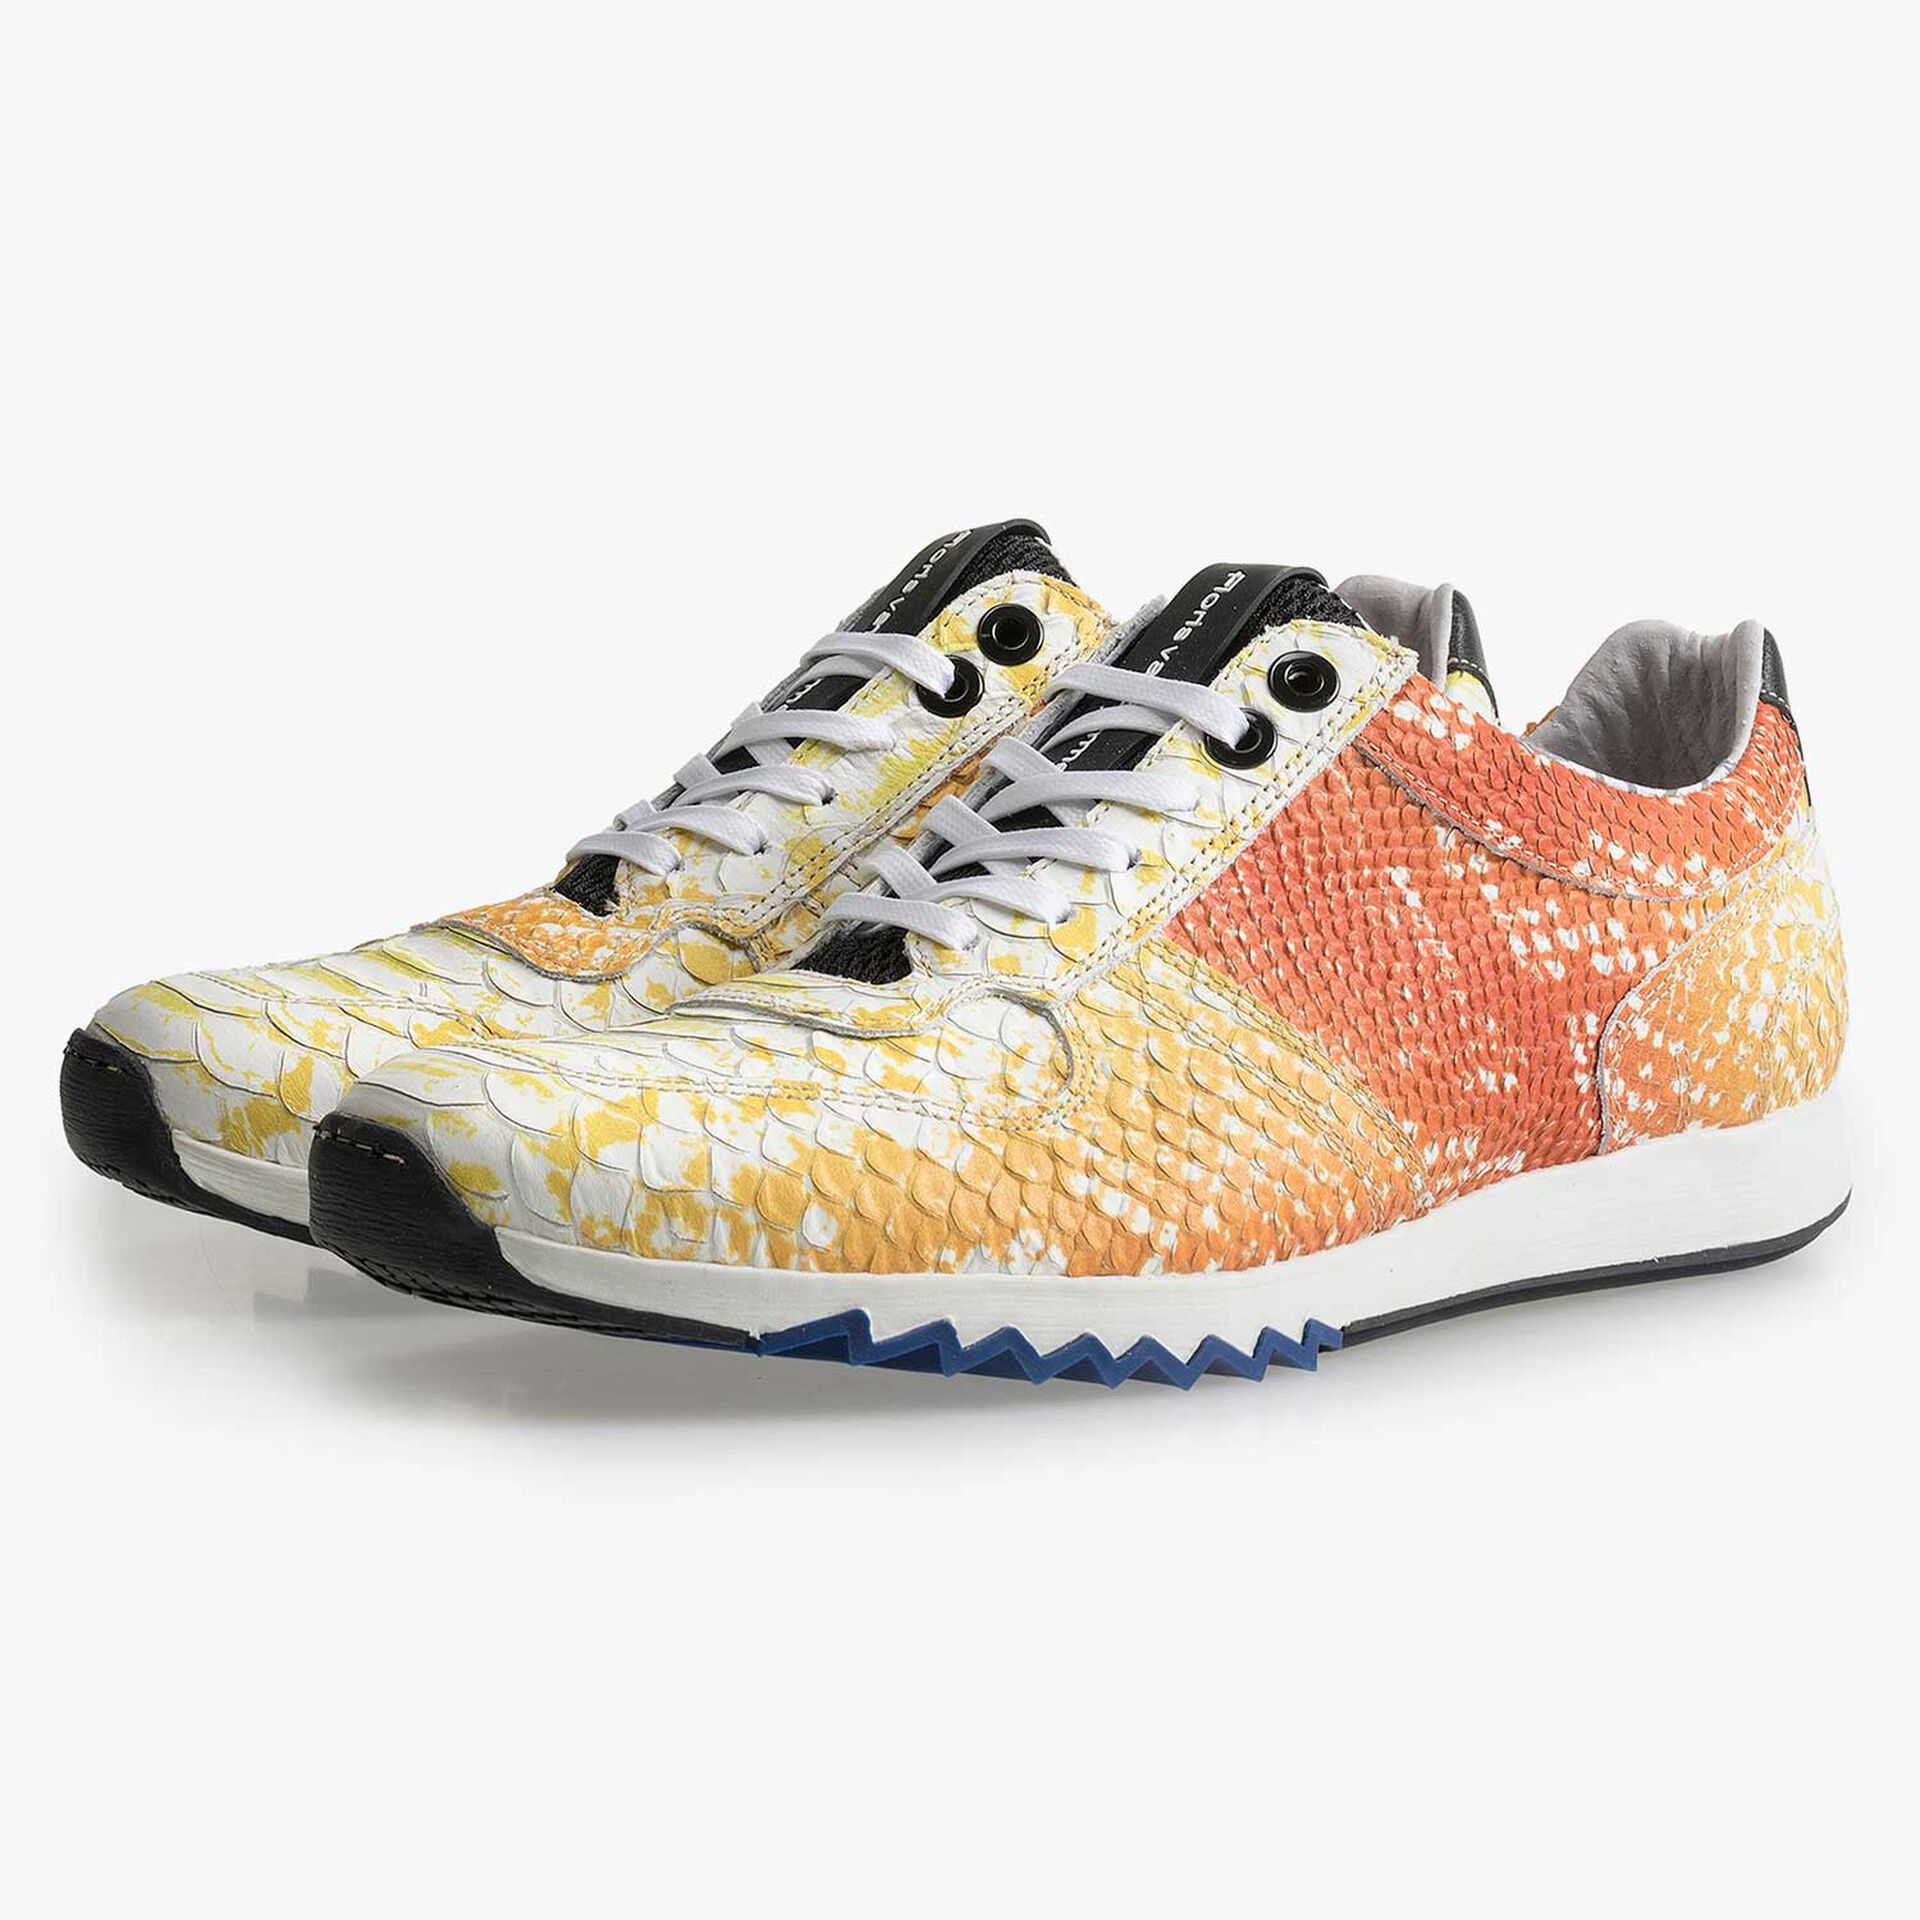 Yellow leather sneaker with a snake pattern